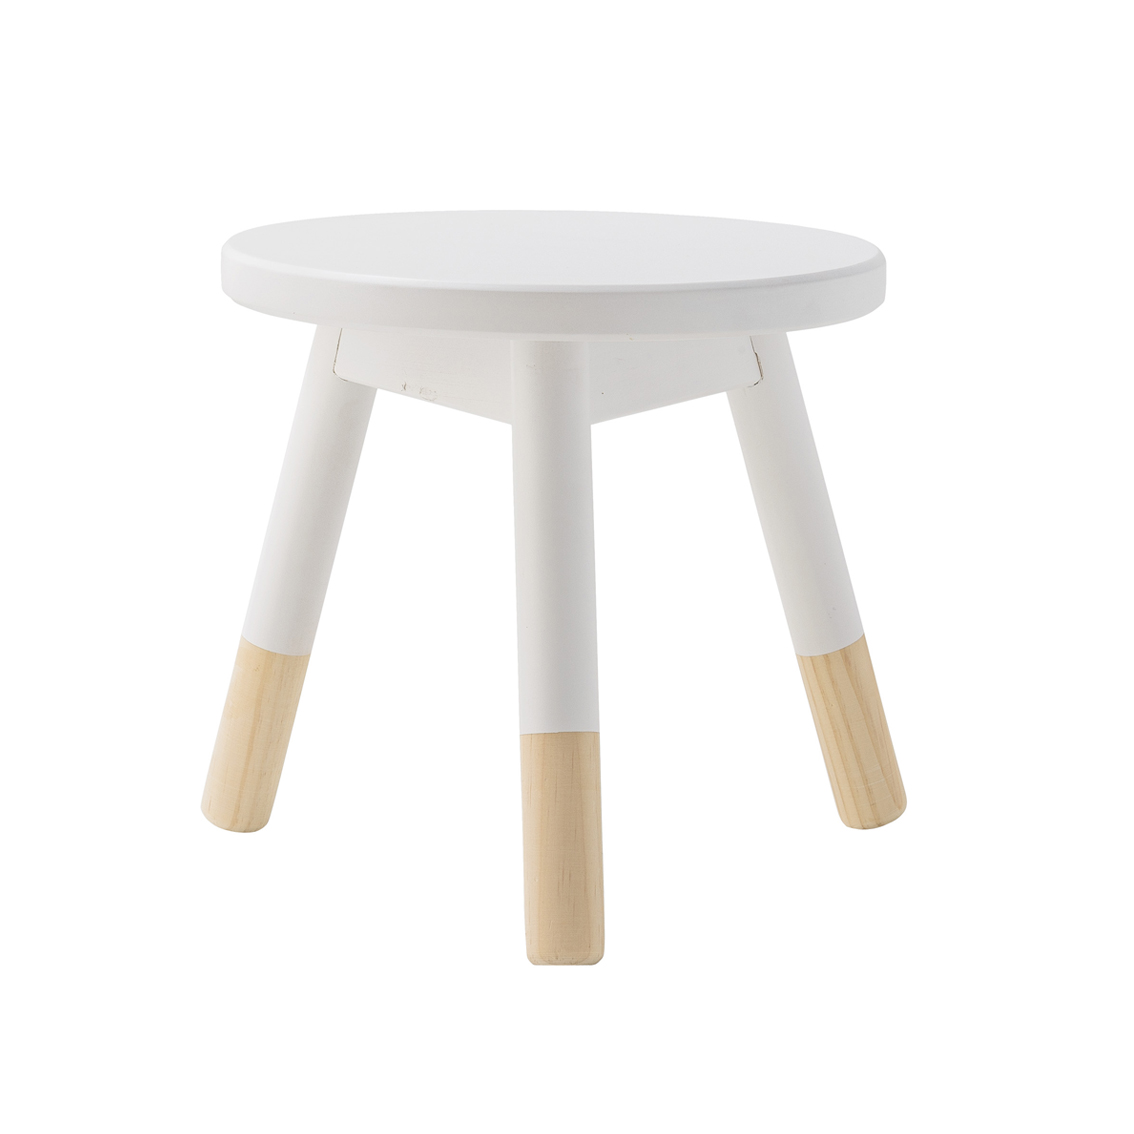 tabouret enfant blanc bloomingville pour chambre enfant les enfants du design. Black Bedroom Furniture Sets. Home Design Ideas